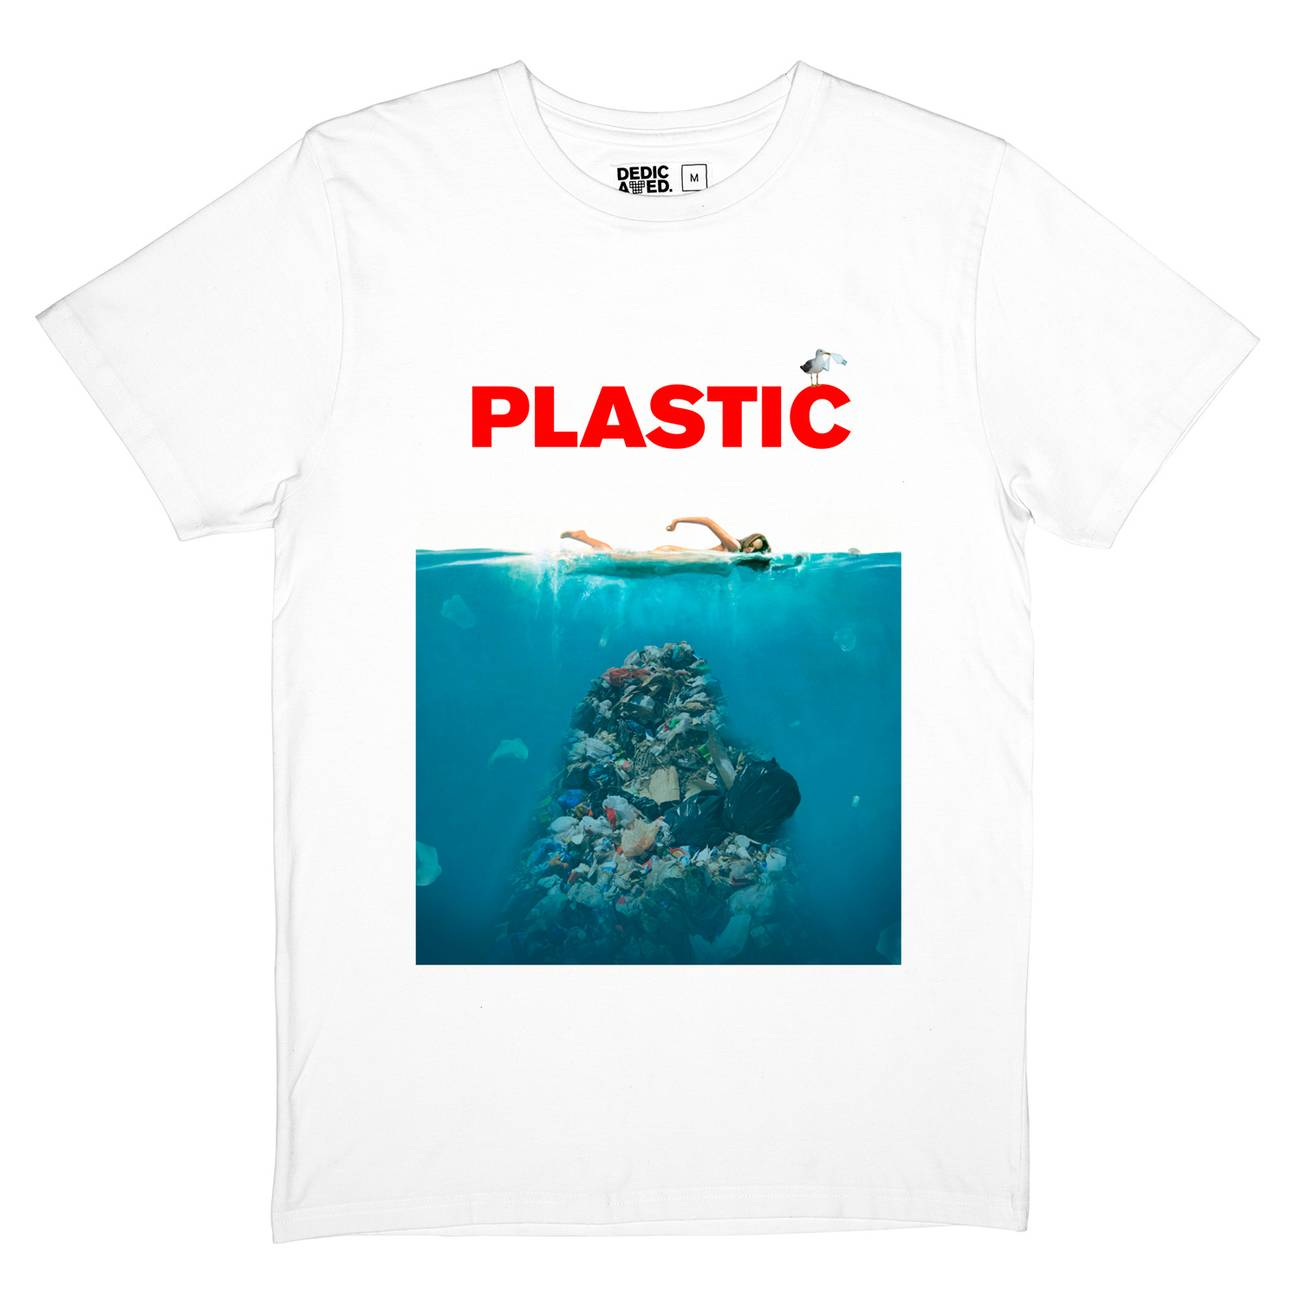 3062e240d05 DEDICATED T-SHIRT STOCKHOLM PLASTIC - ΑΝΔΡΑΣ ΛΕΥΚΟ